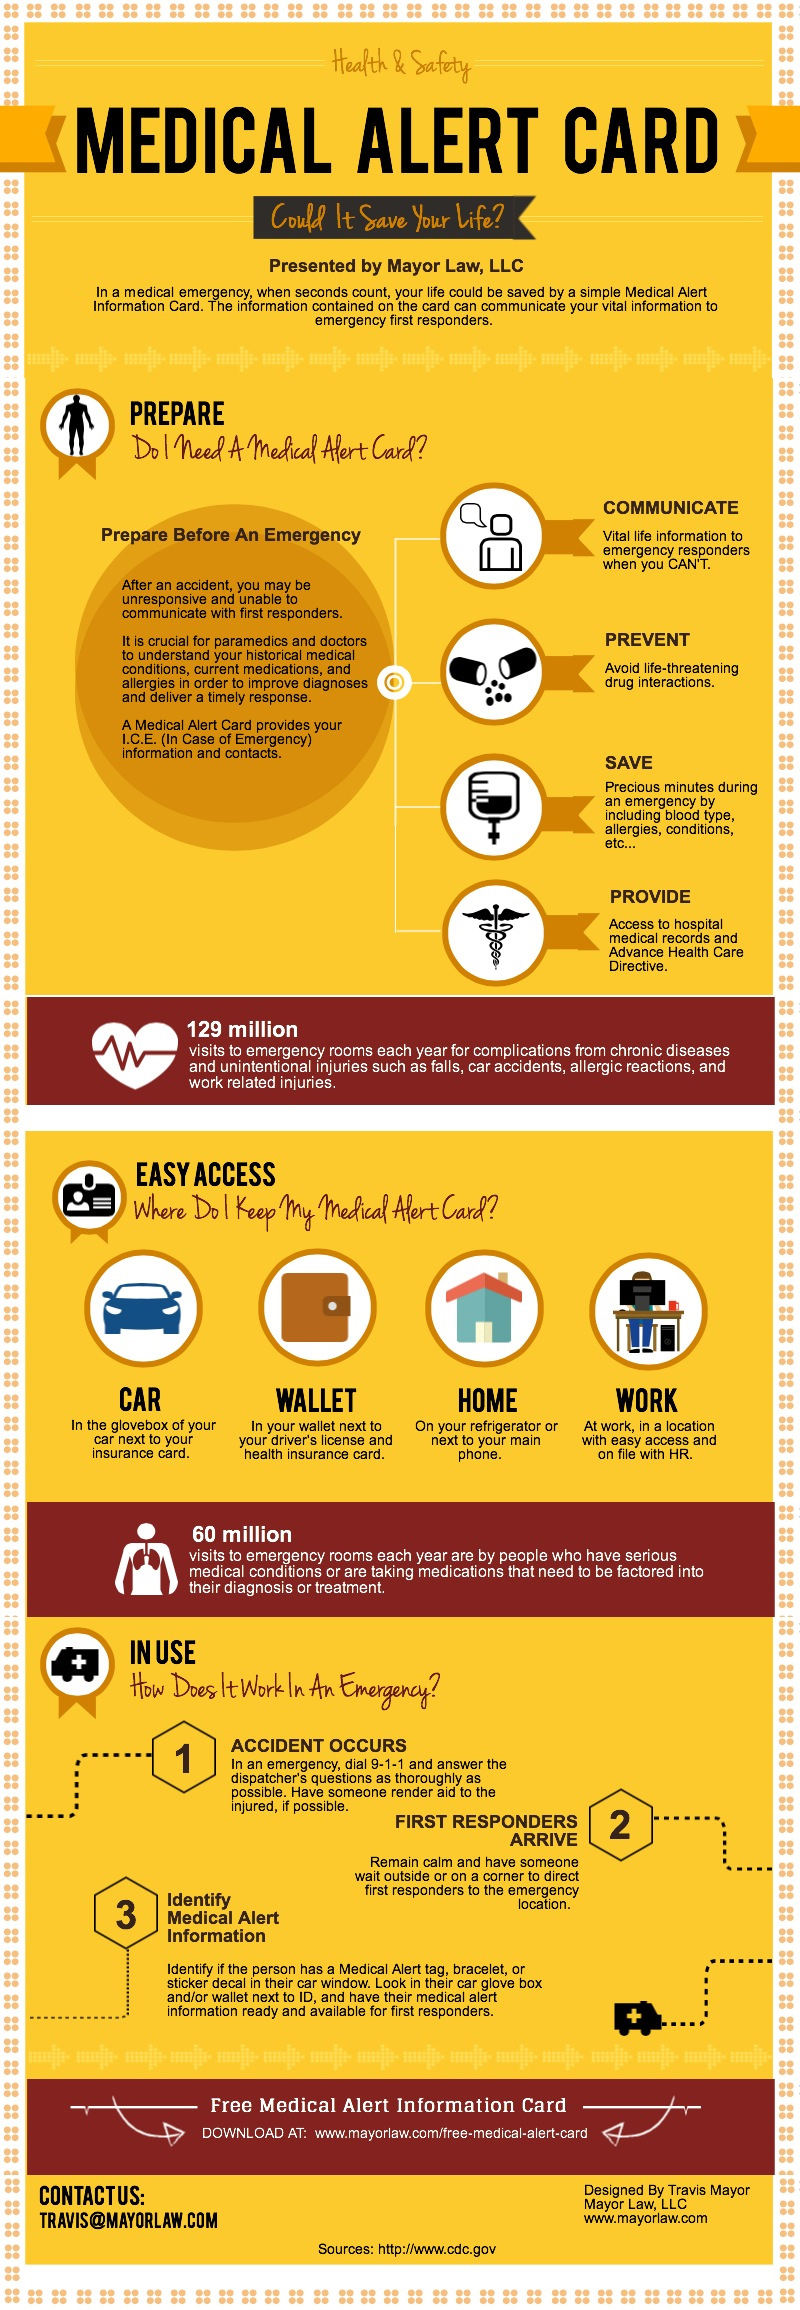 medical alert wallet card template - free medical alert card download with infographic